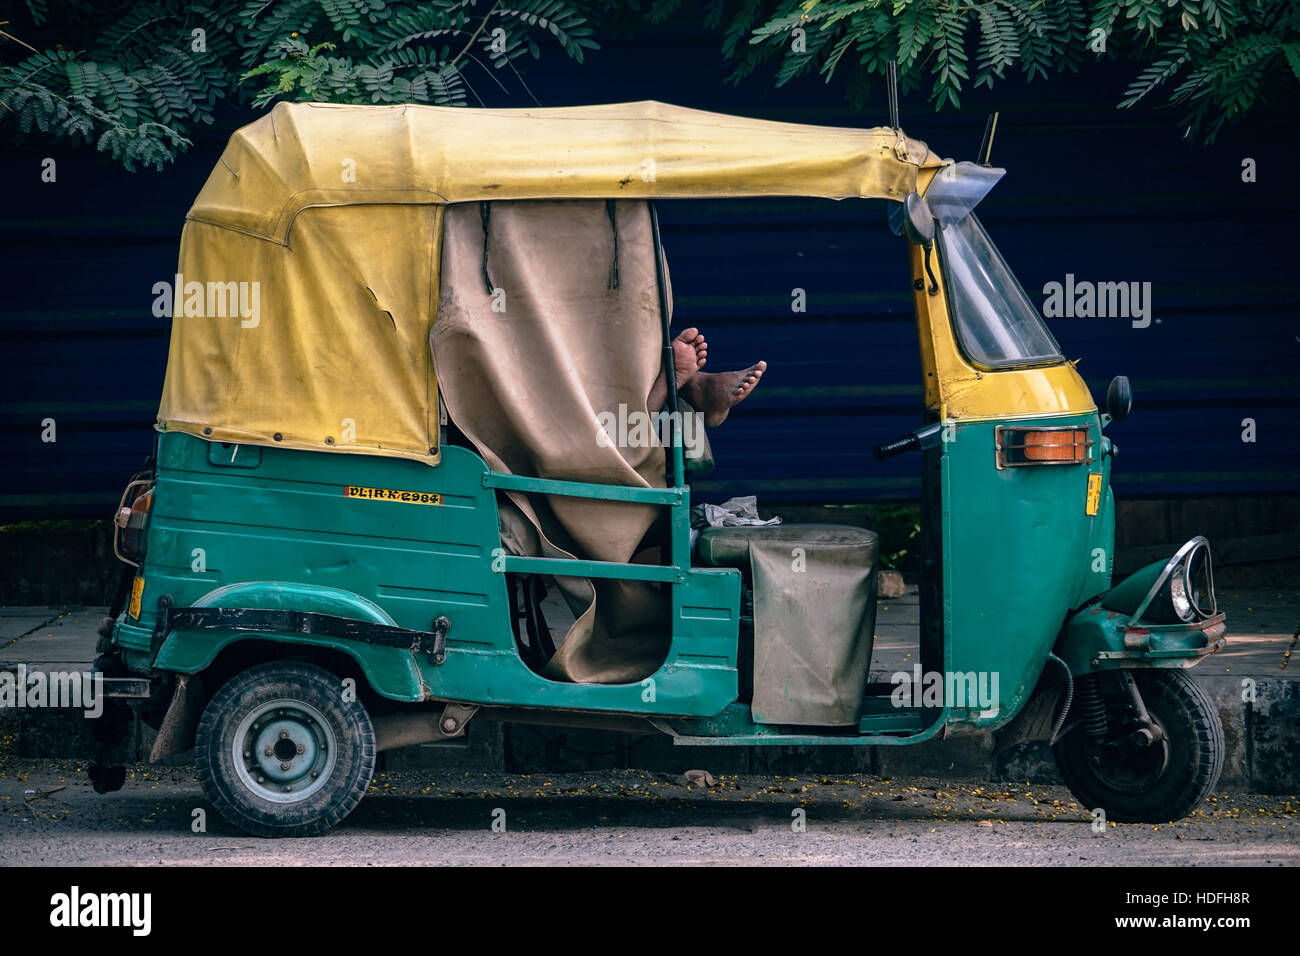 Auto-rickshaws ensure connectivity and easy access throughout congested Indian cities - Stock Image